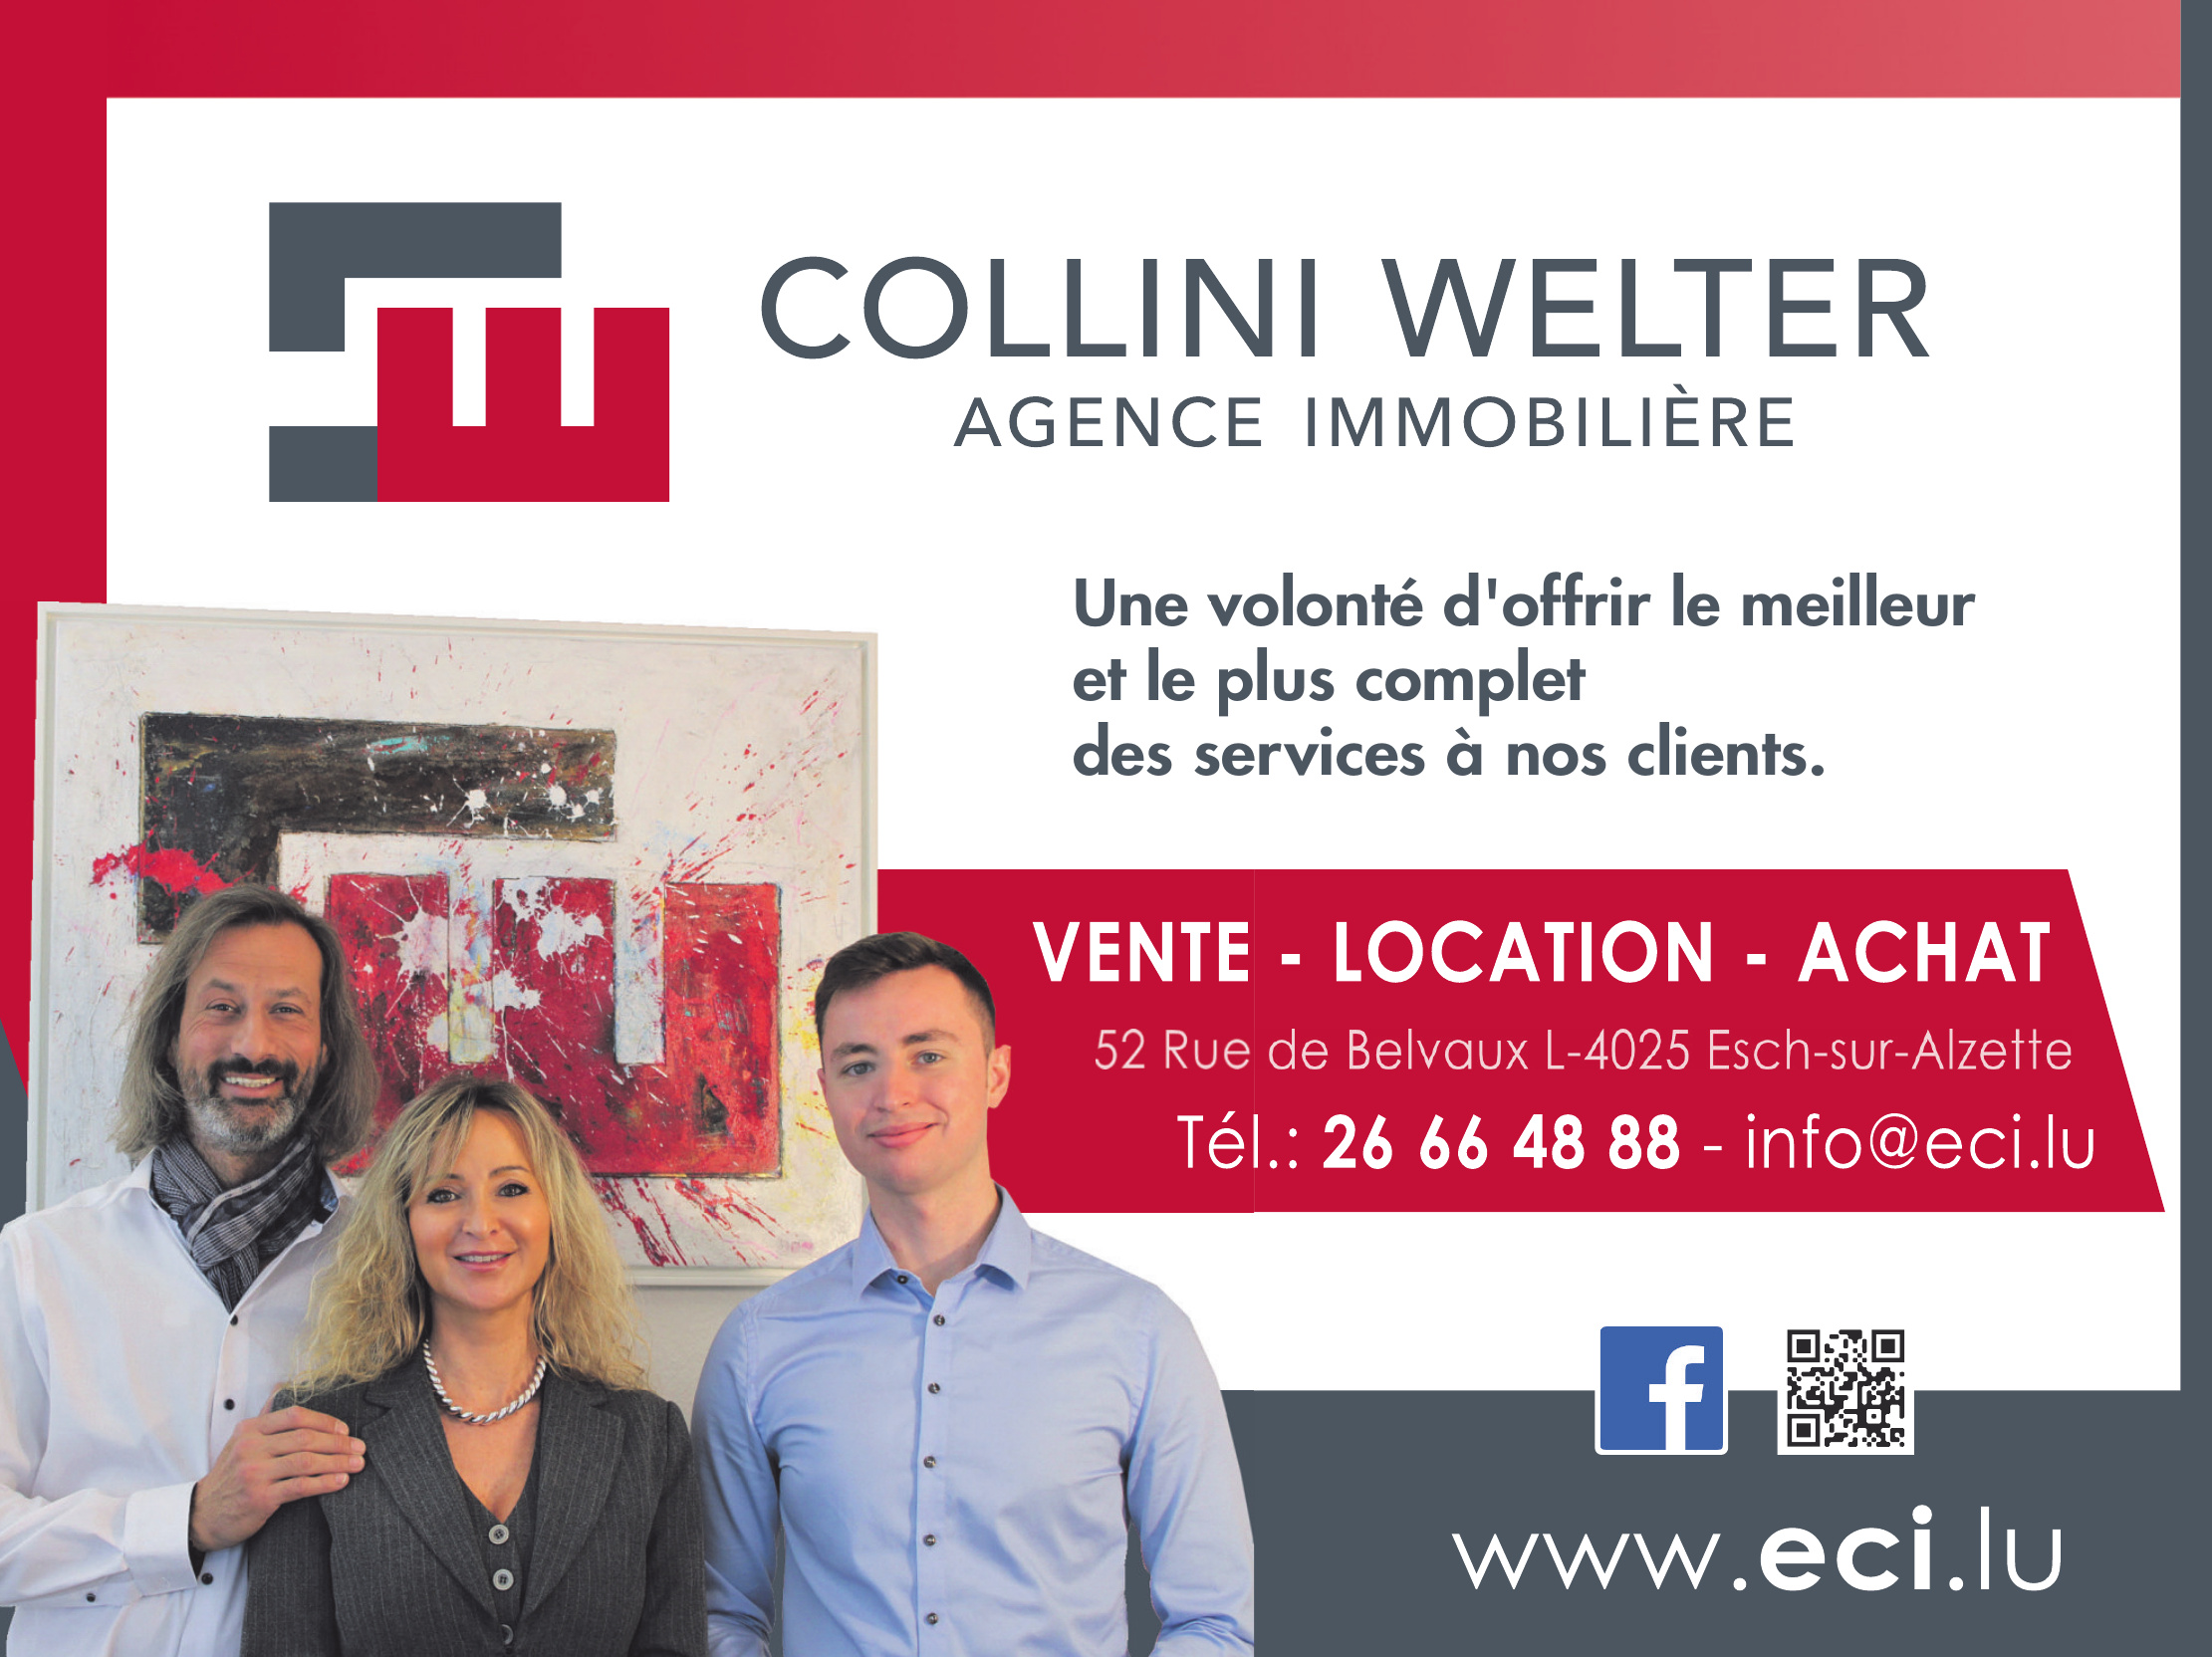 Collini Welter - Agence Immobiliére